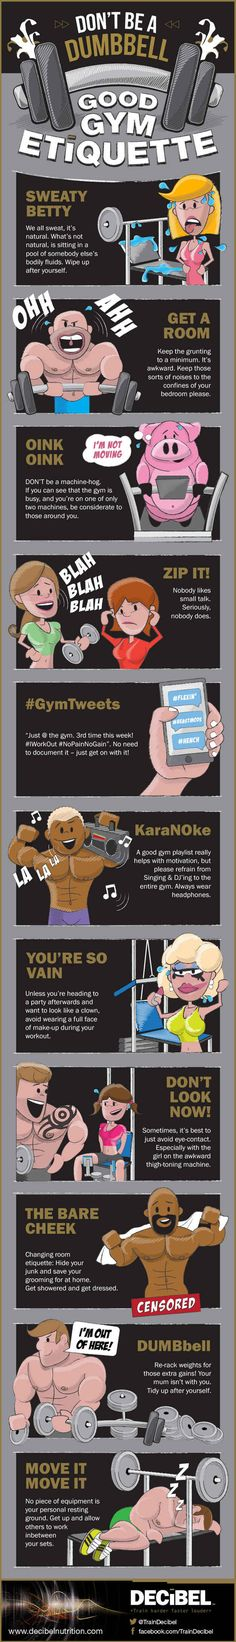 Learn proper gym manners, because no one likes an excessive grunter.